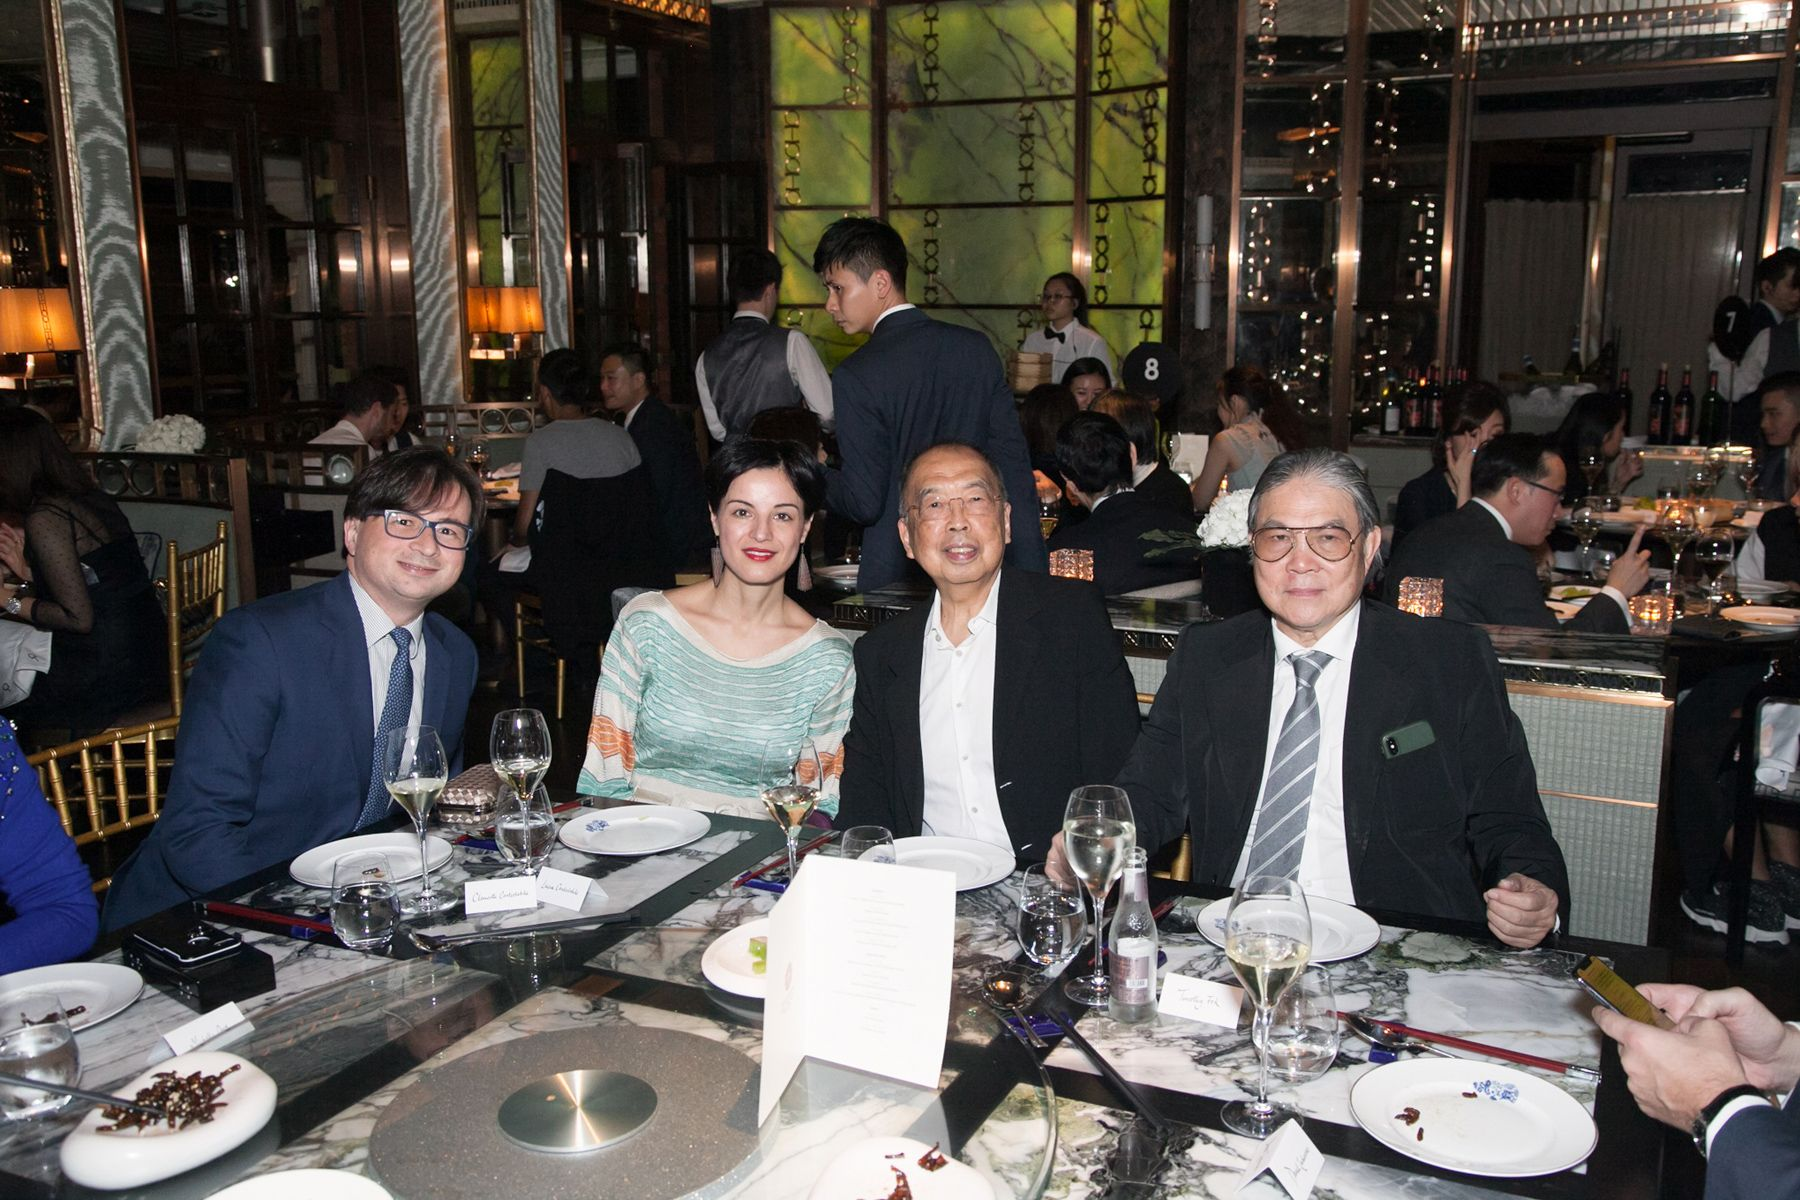 Clemente Contestabile, Lucia Pasqualini, David Cheung, Timothy Fok